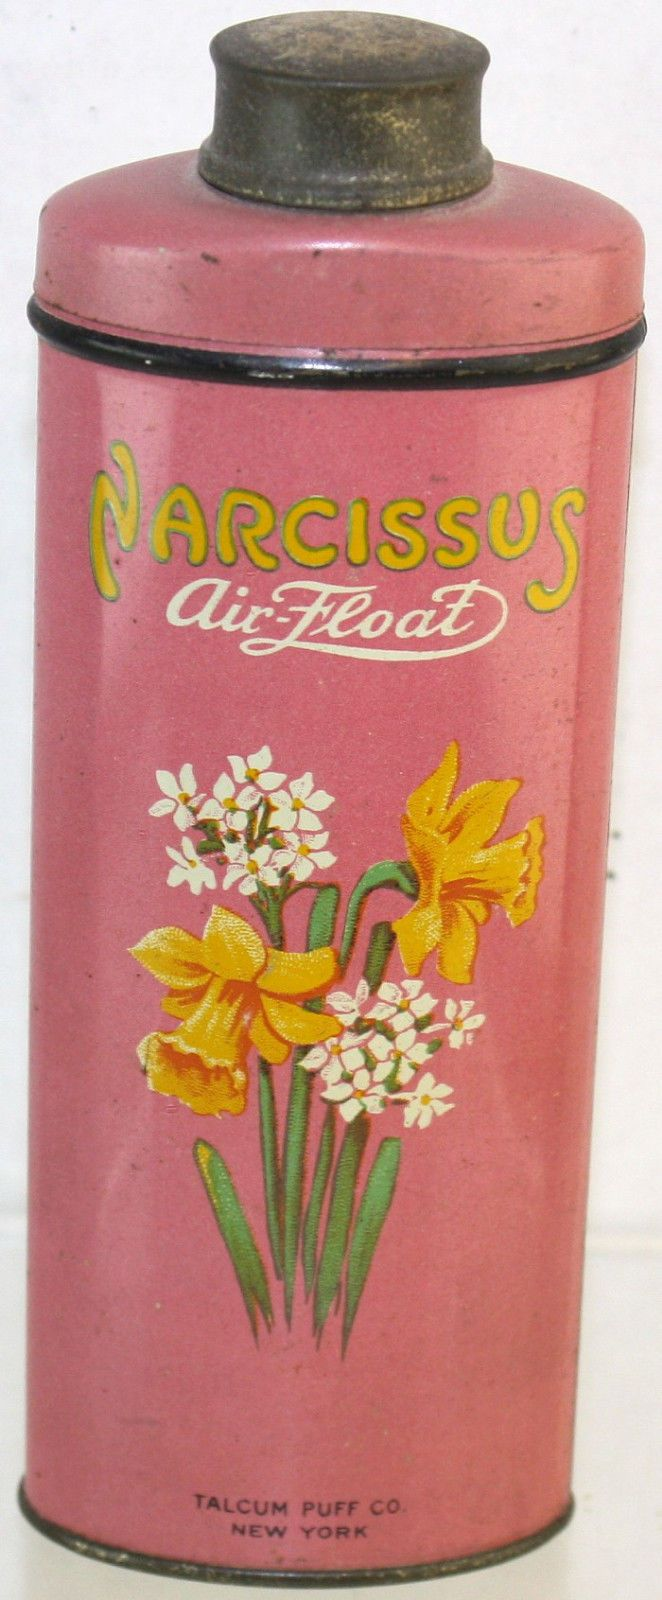 1940's Narcissus Air-Float New York Talcum Baby Powder Tin Container